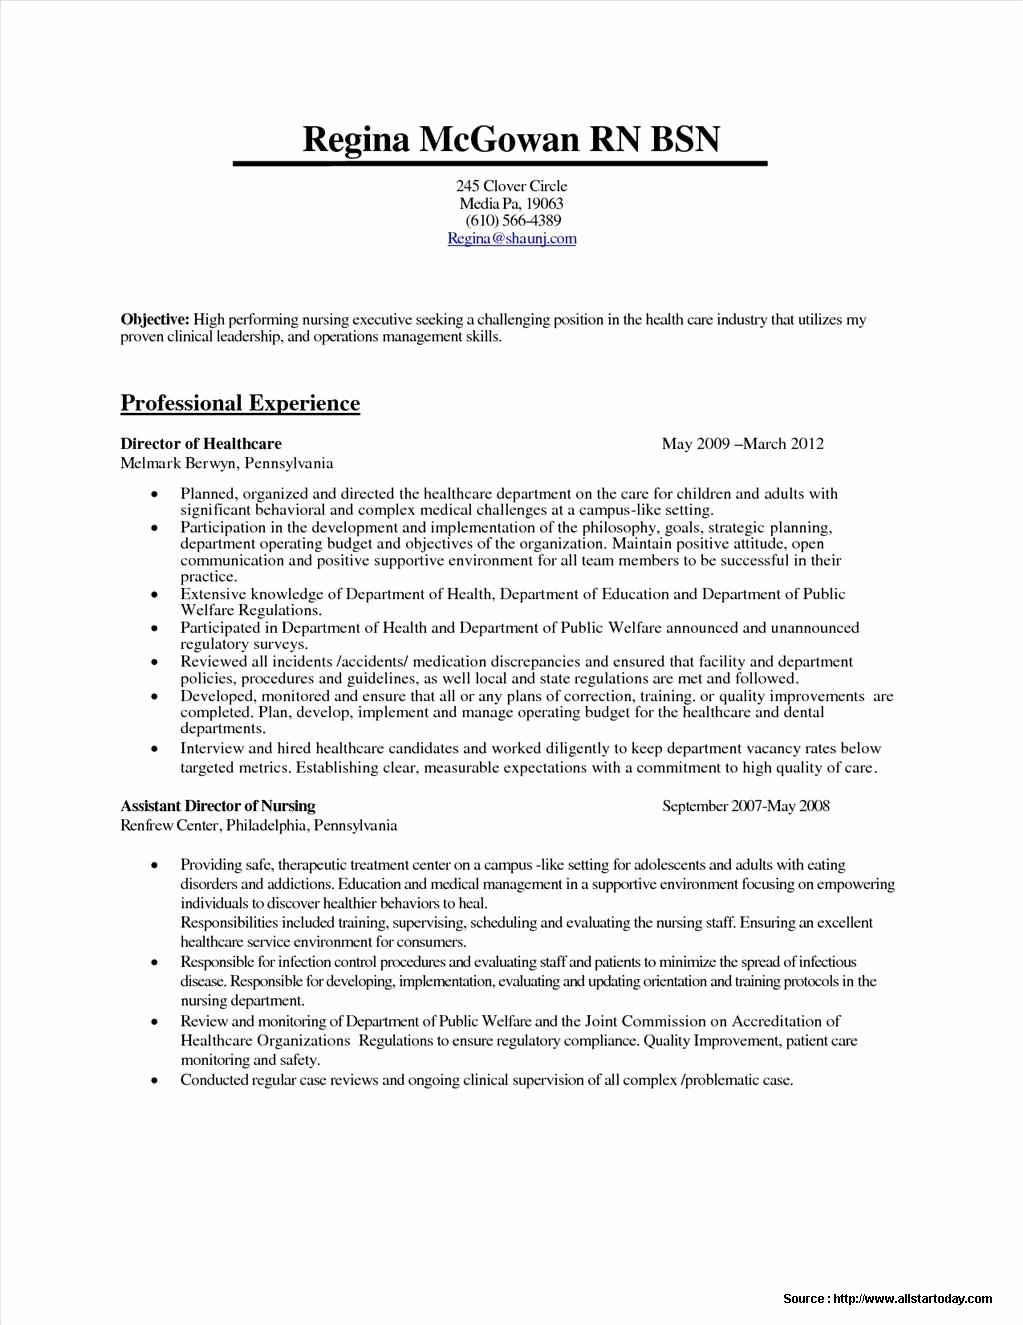 Sample Resume for Rn Bsn Resume Resume Examples